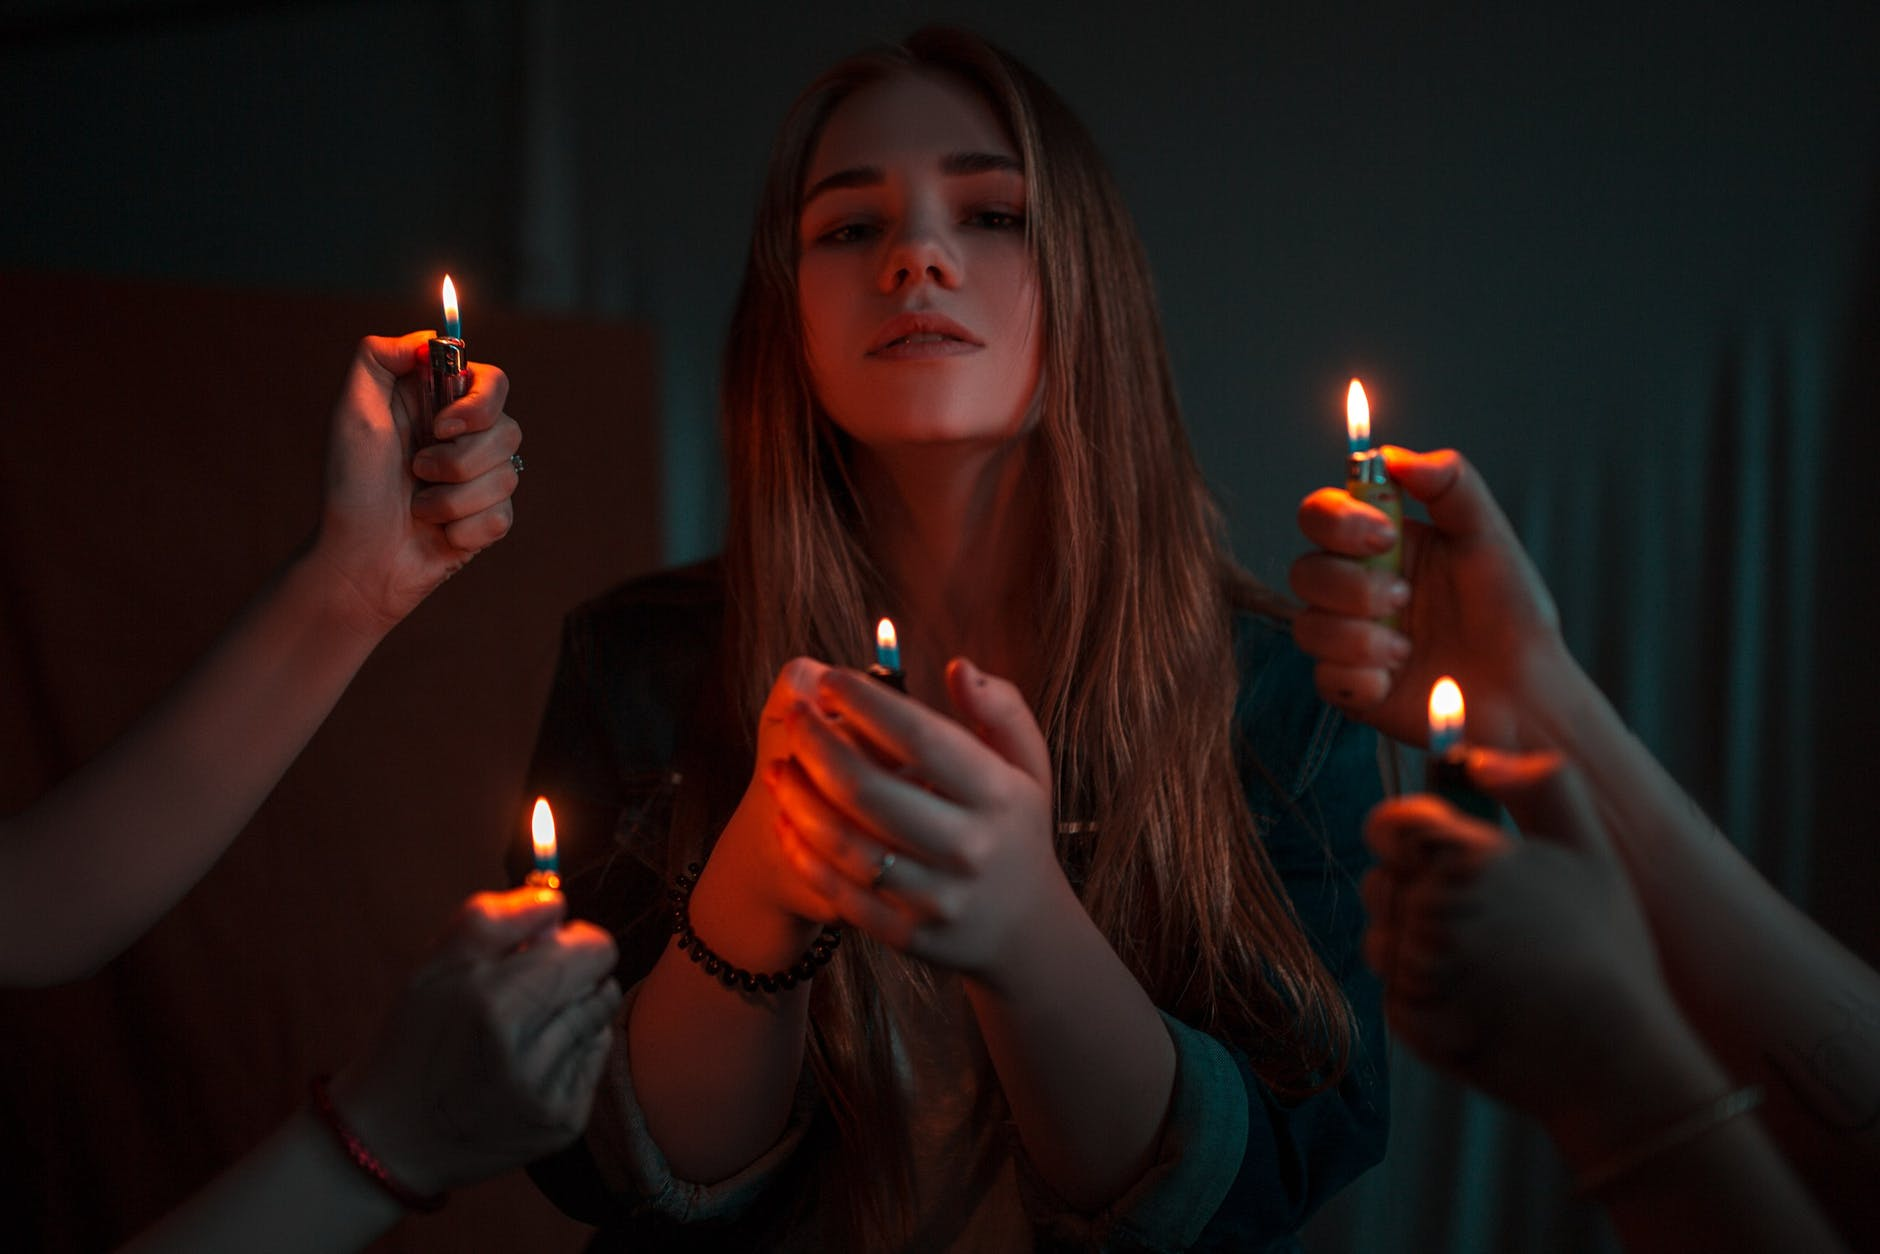 woman holding disposable lighter